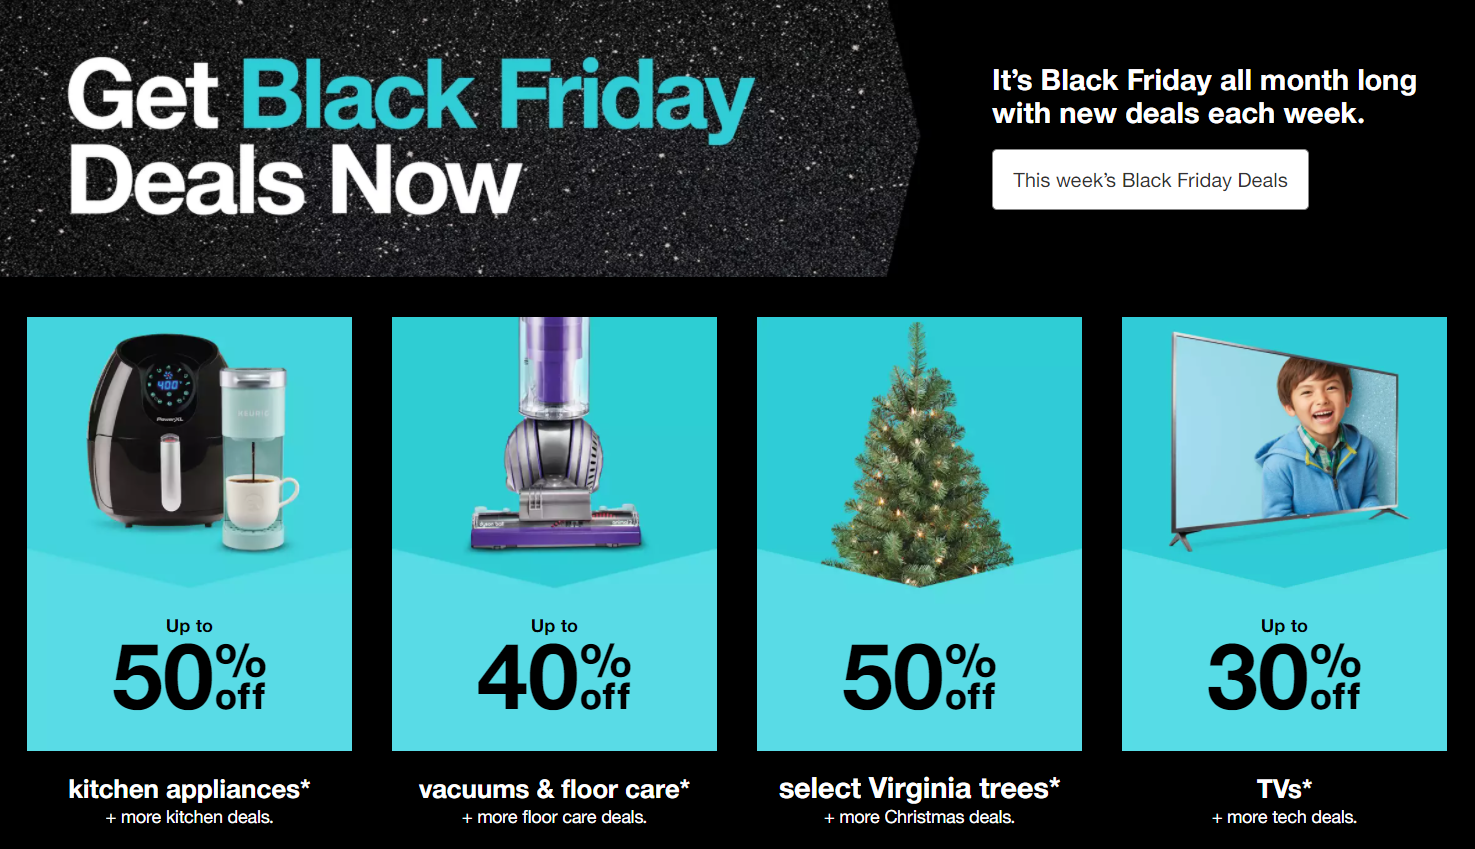 Example of category-specific offers for Black Friday by Target